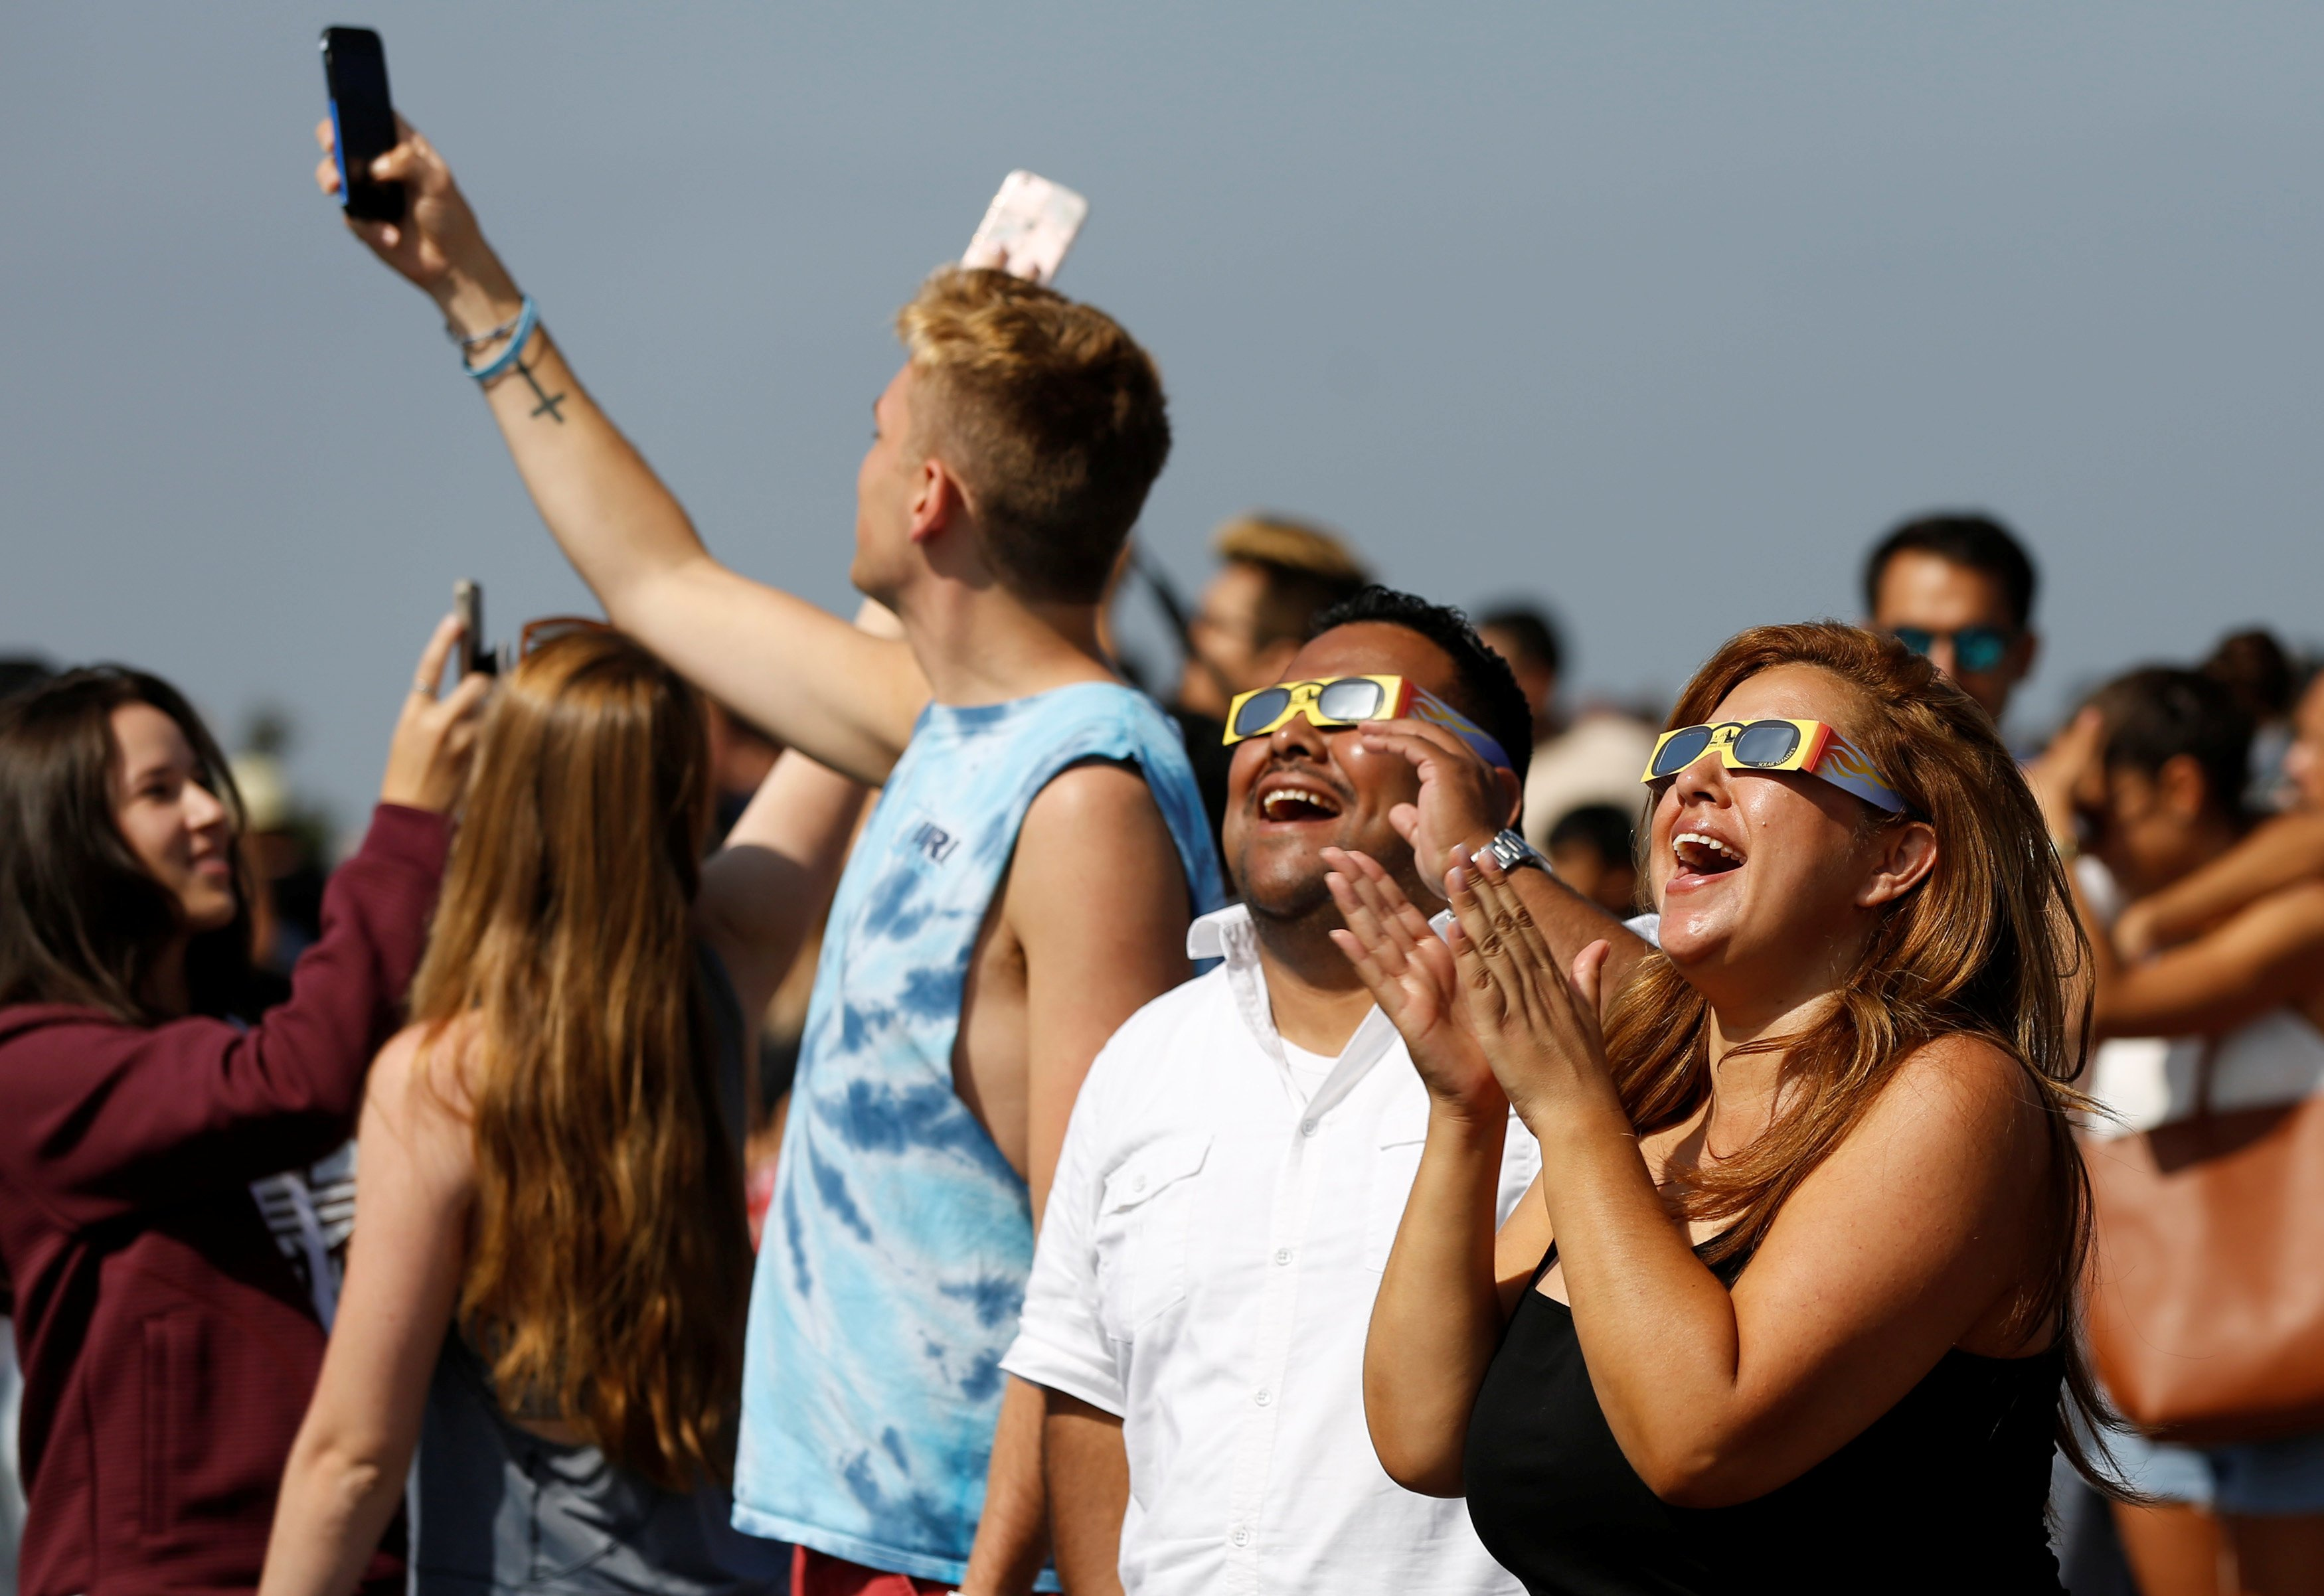 People watch the solar eclipse on the lawn of Griffith Observatory in Los Angeles